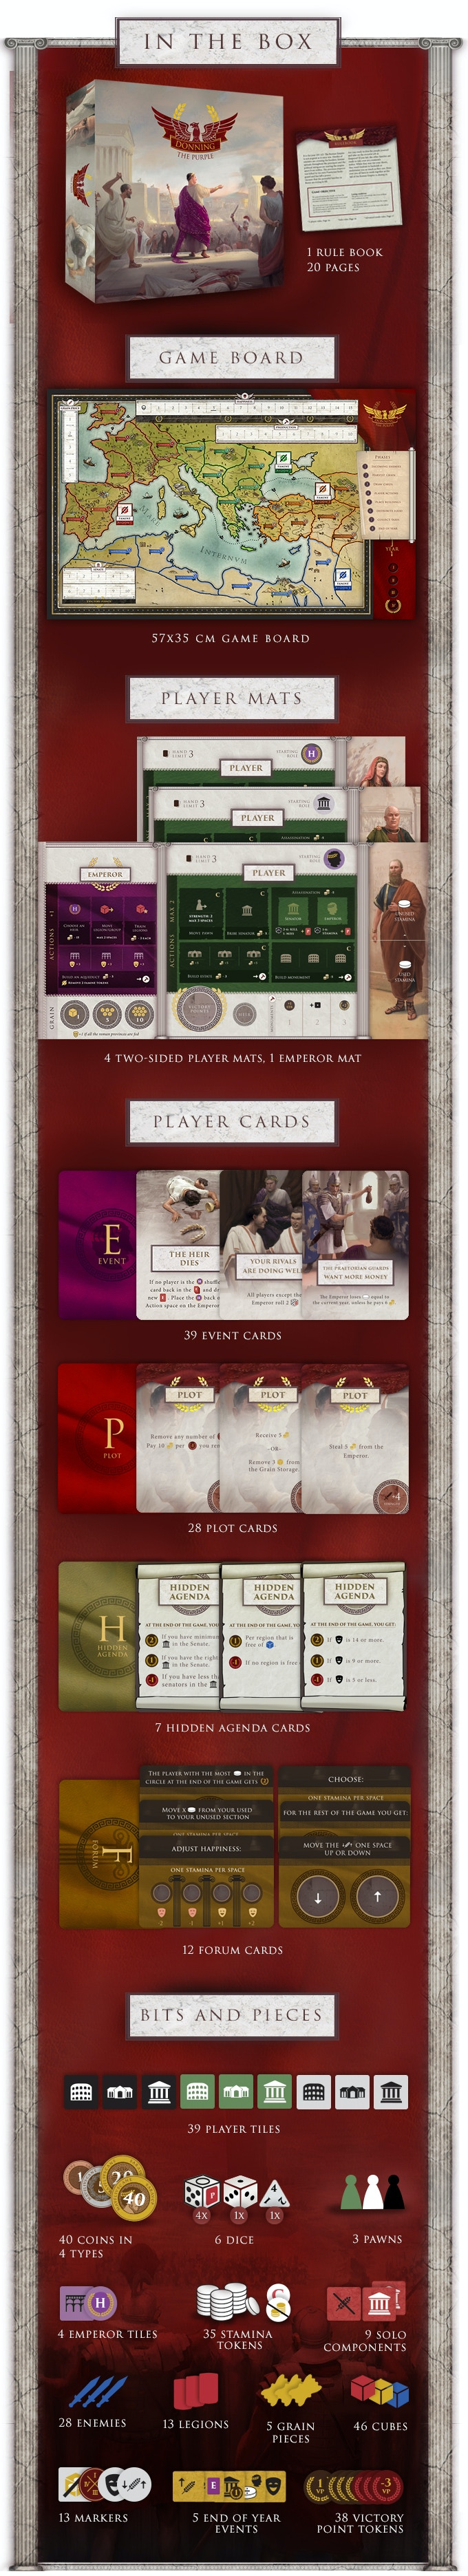 Donning the purple + Votes & Virtue expansion